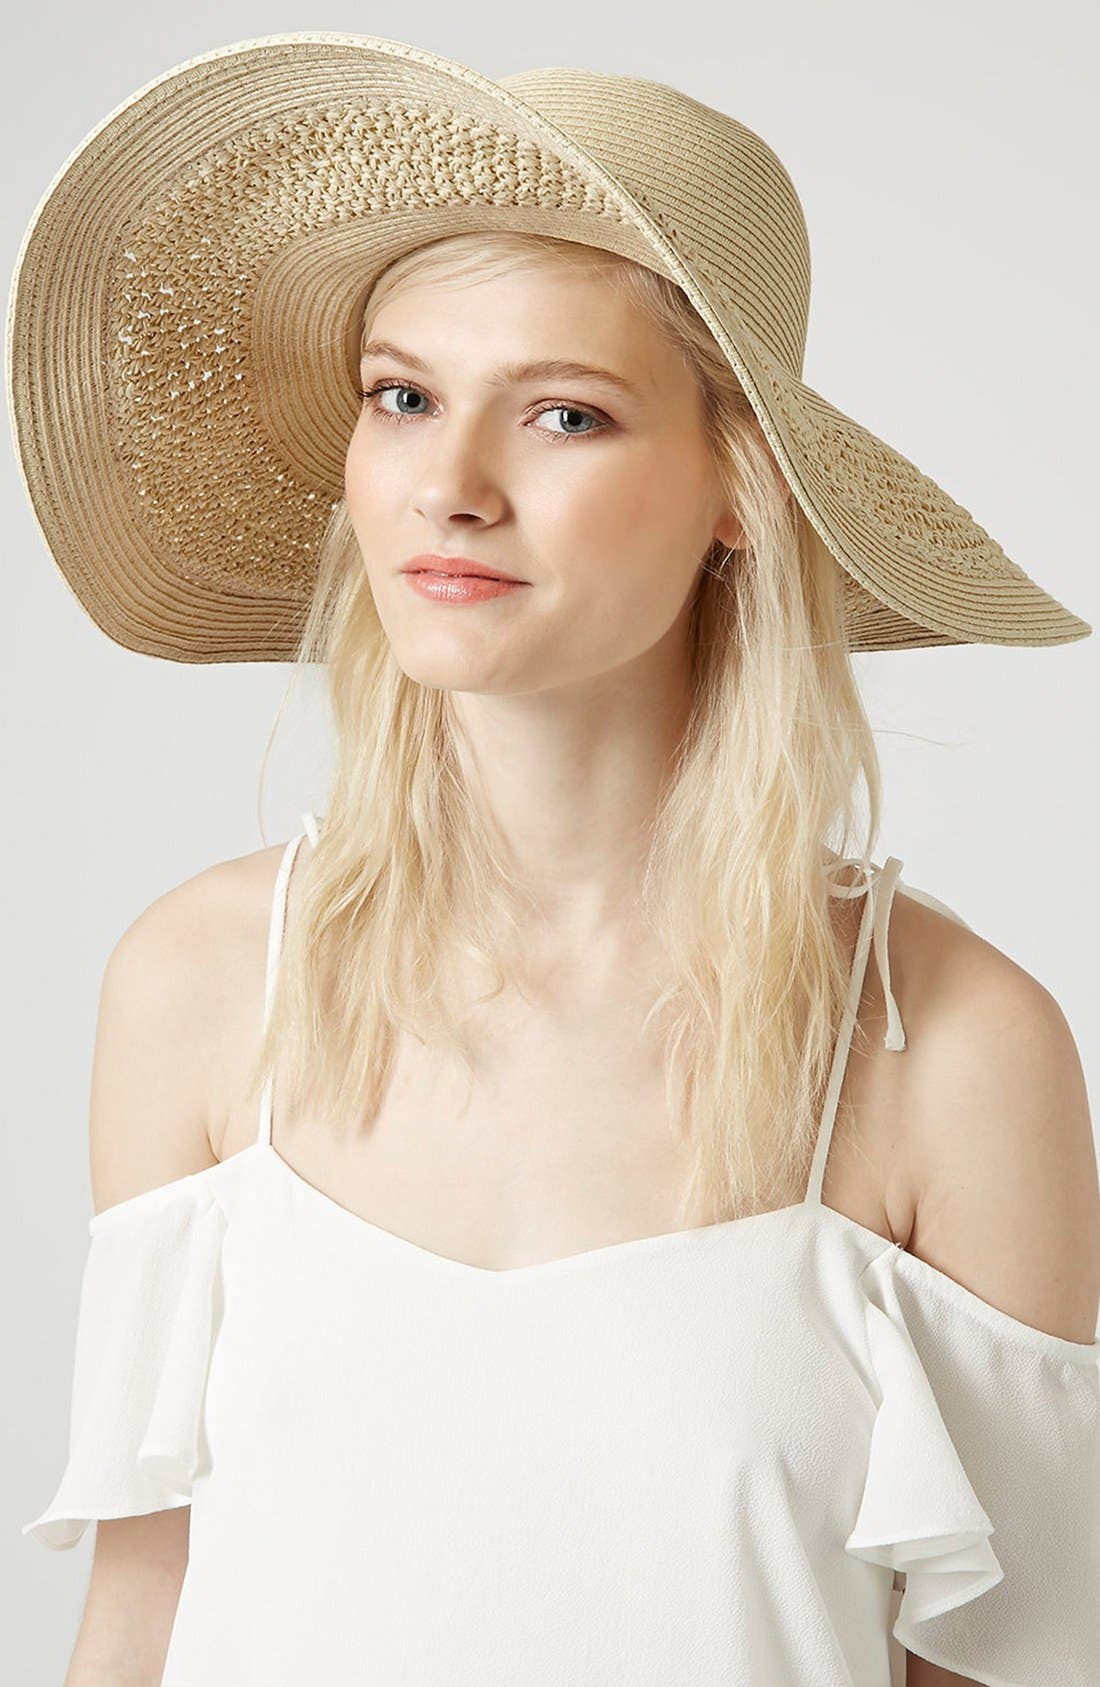 Alternate Image 1 Selected - Topshop Crochet Floppy Hat